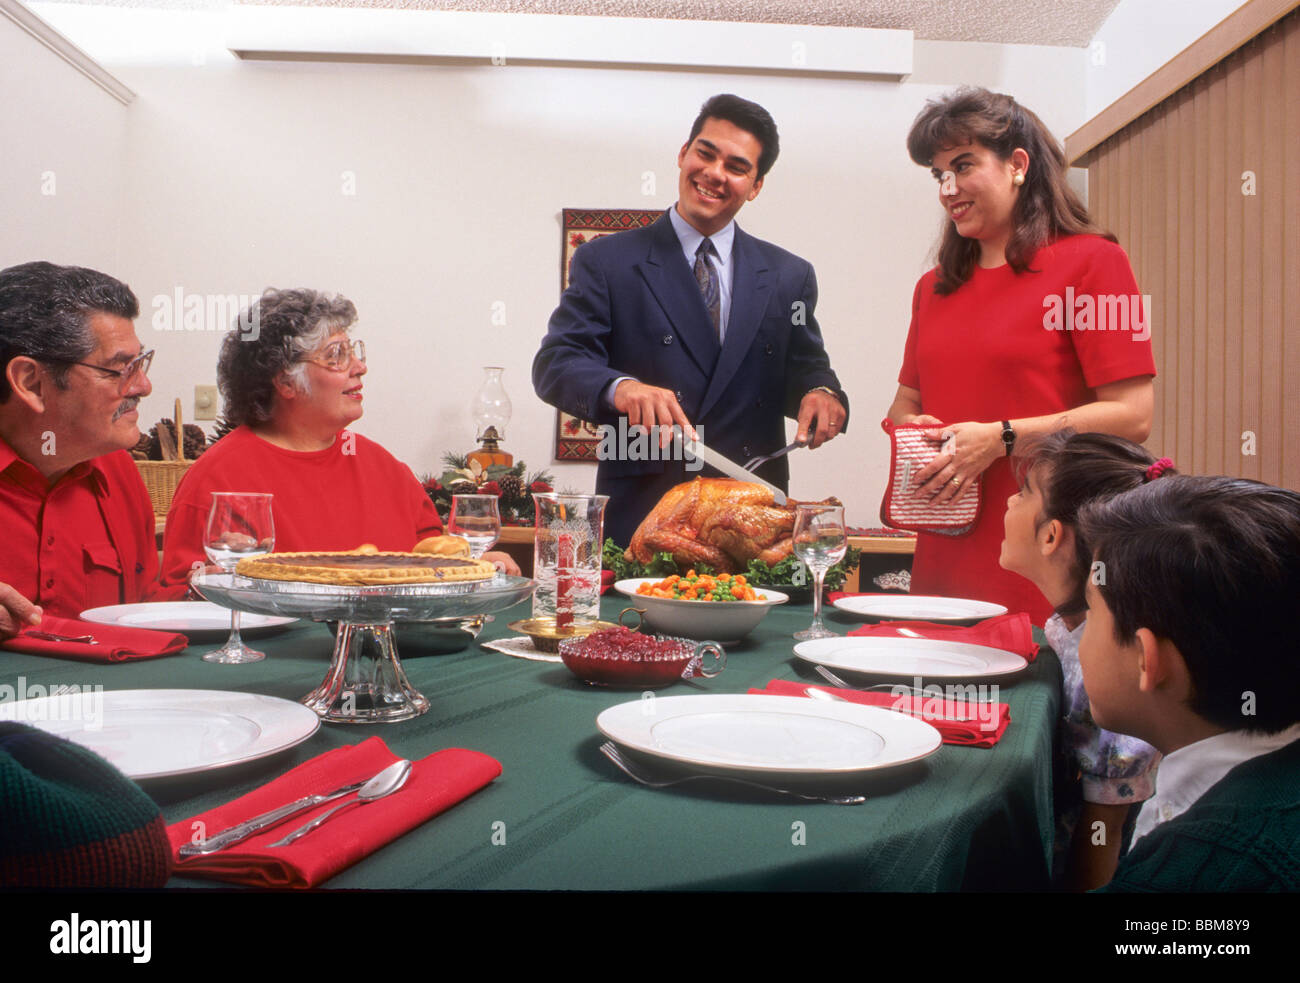 Hispanic Family Holiday Meal Thanksgiving Christmas Turkey Dinner Eat Share Love Enjoy Happy Fun Celebrate Child Grandparent